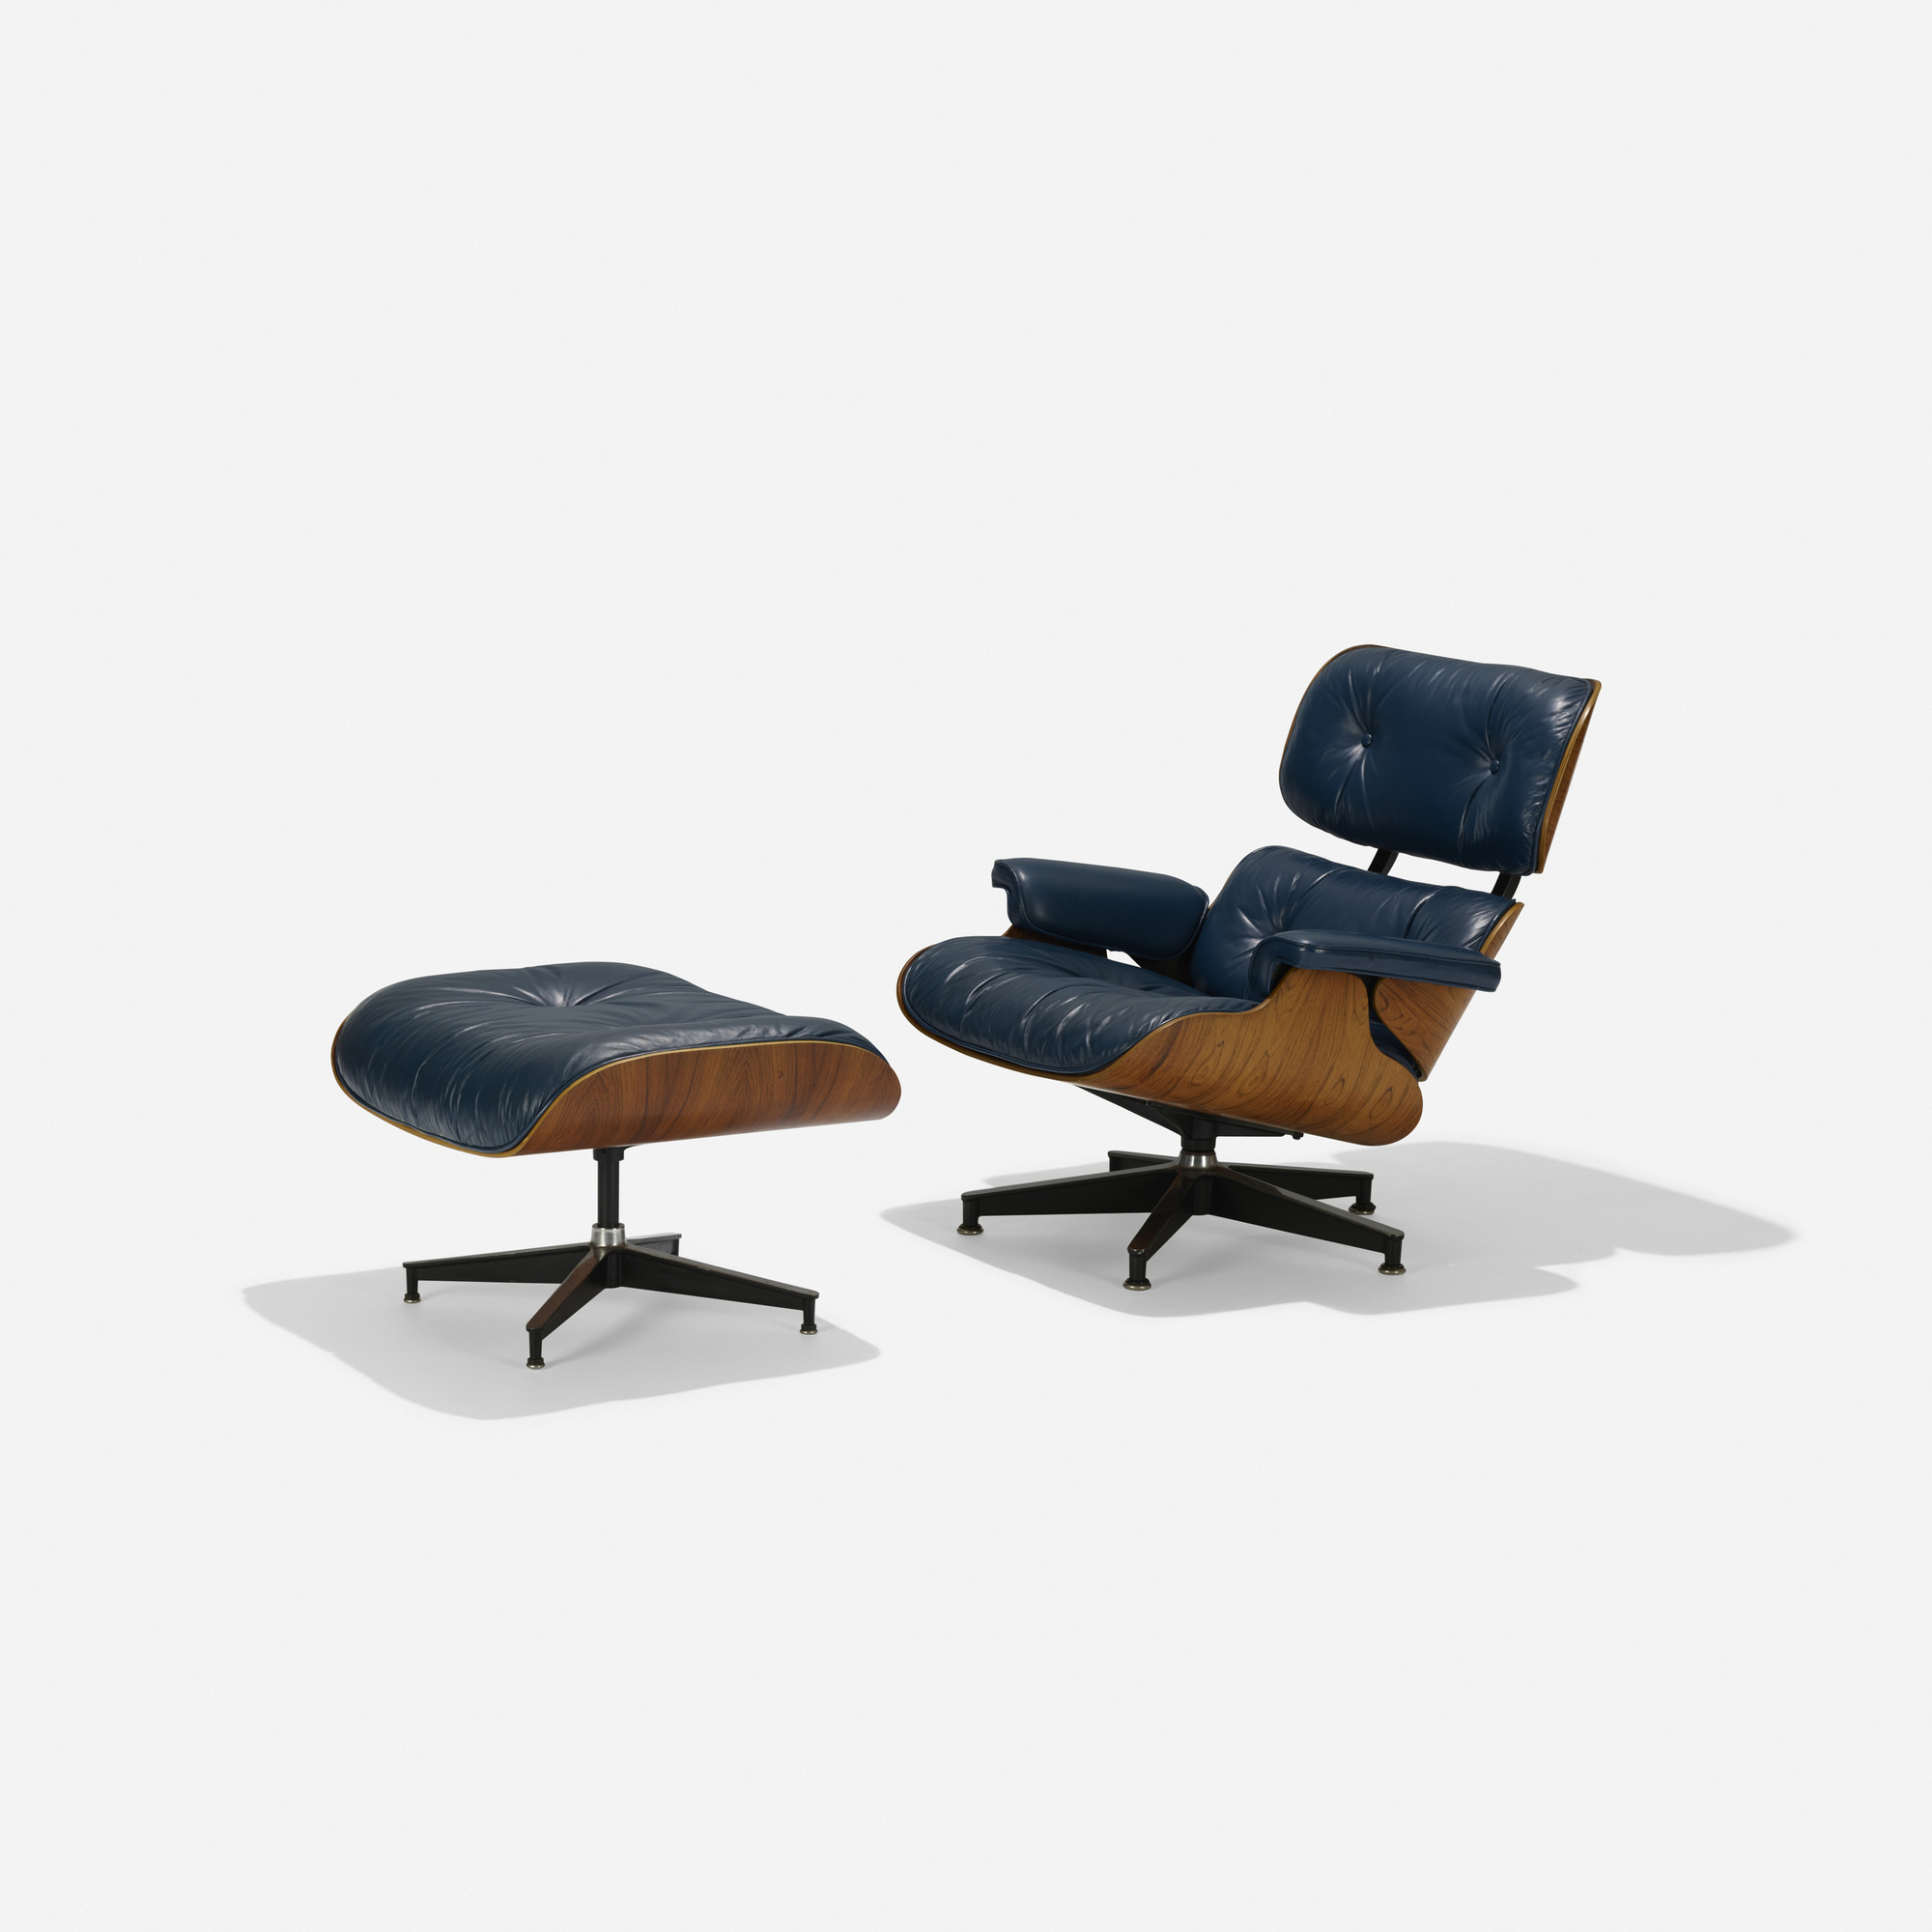 103 charles and ray eames special order 670 lounge chair. Black Bedroom Furniture Sets. Home Design Ideas